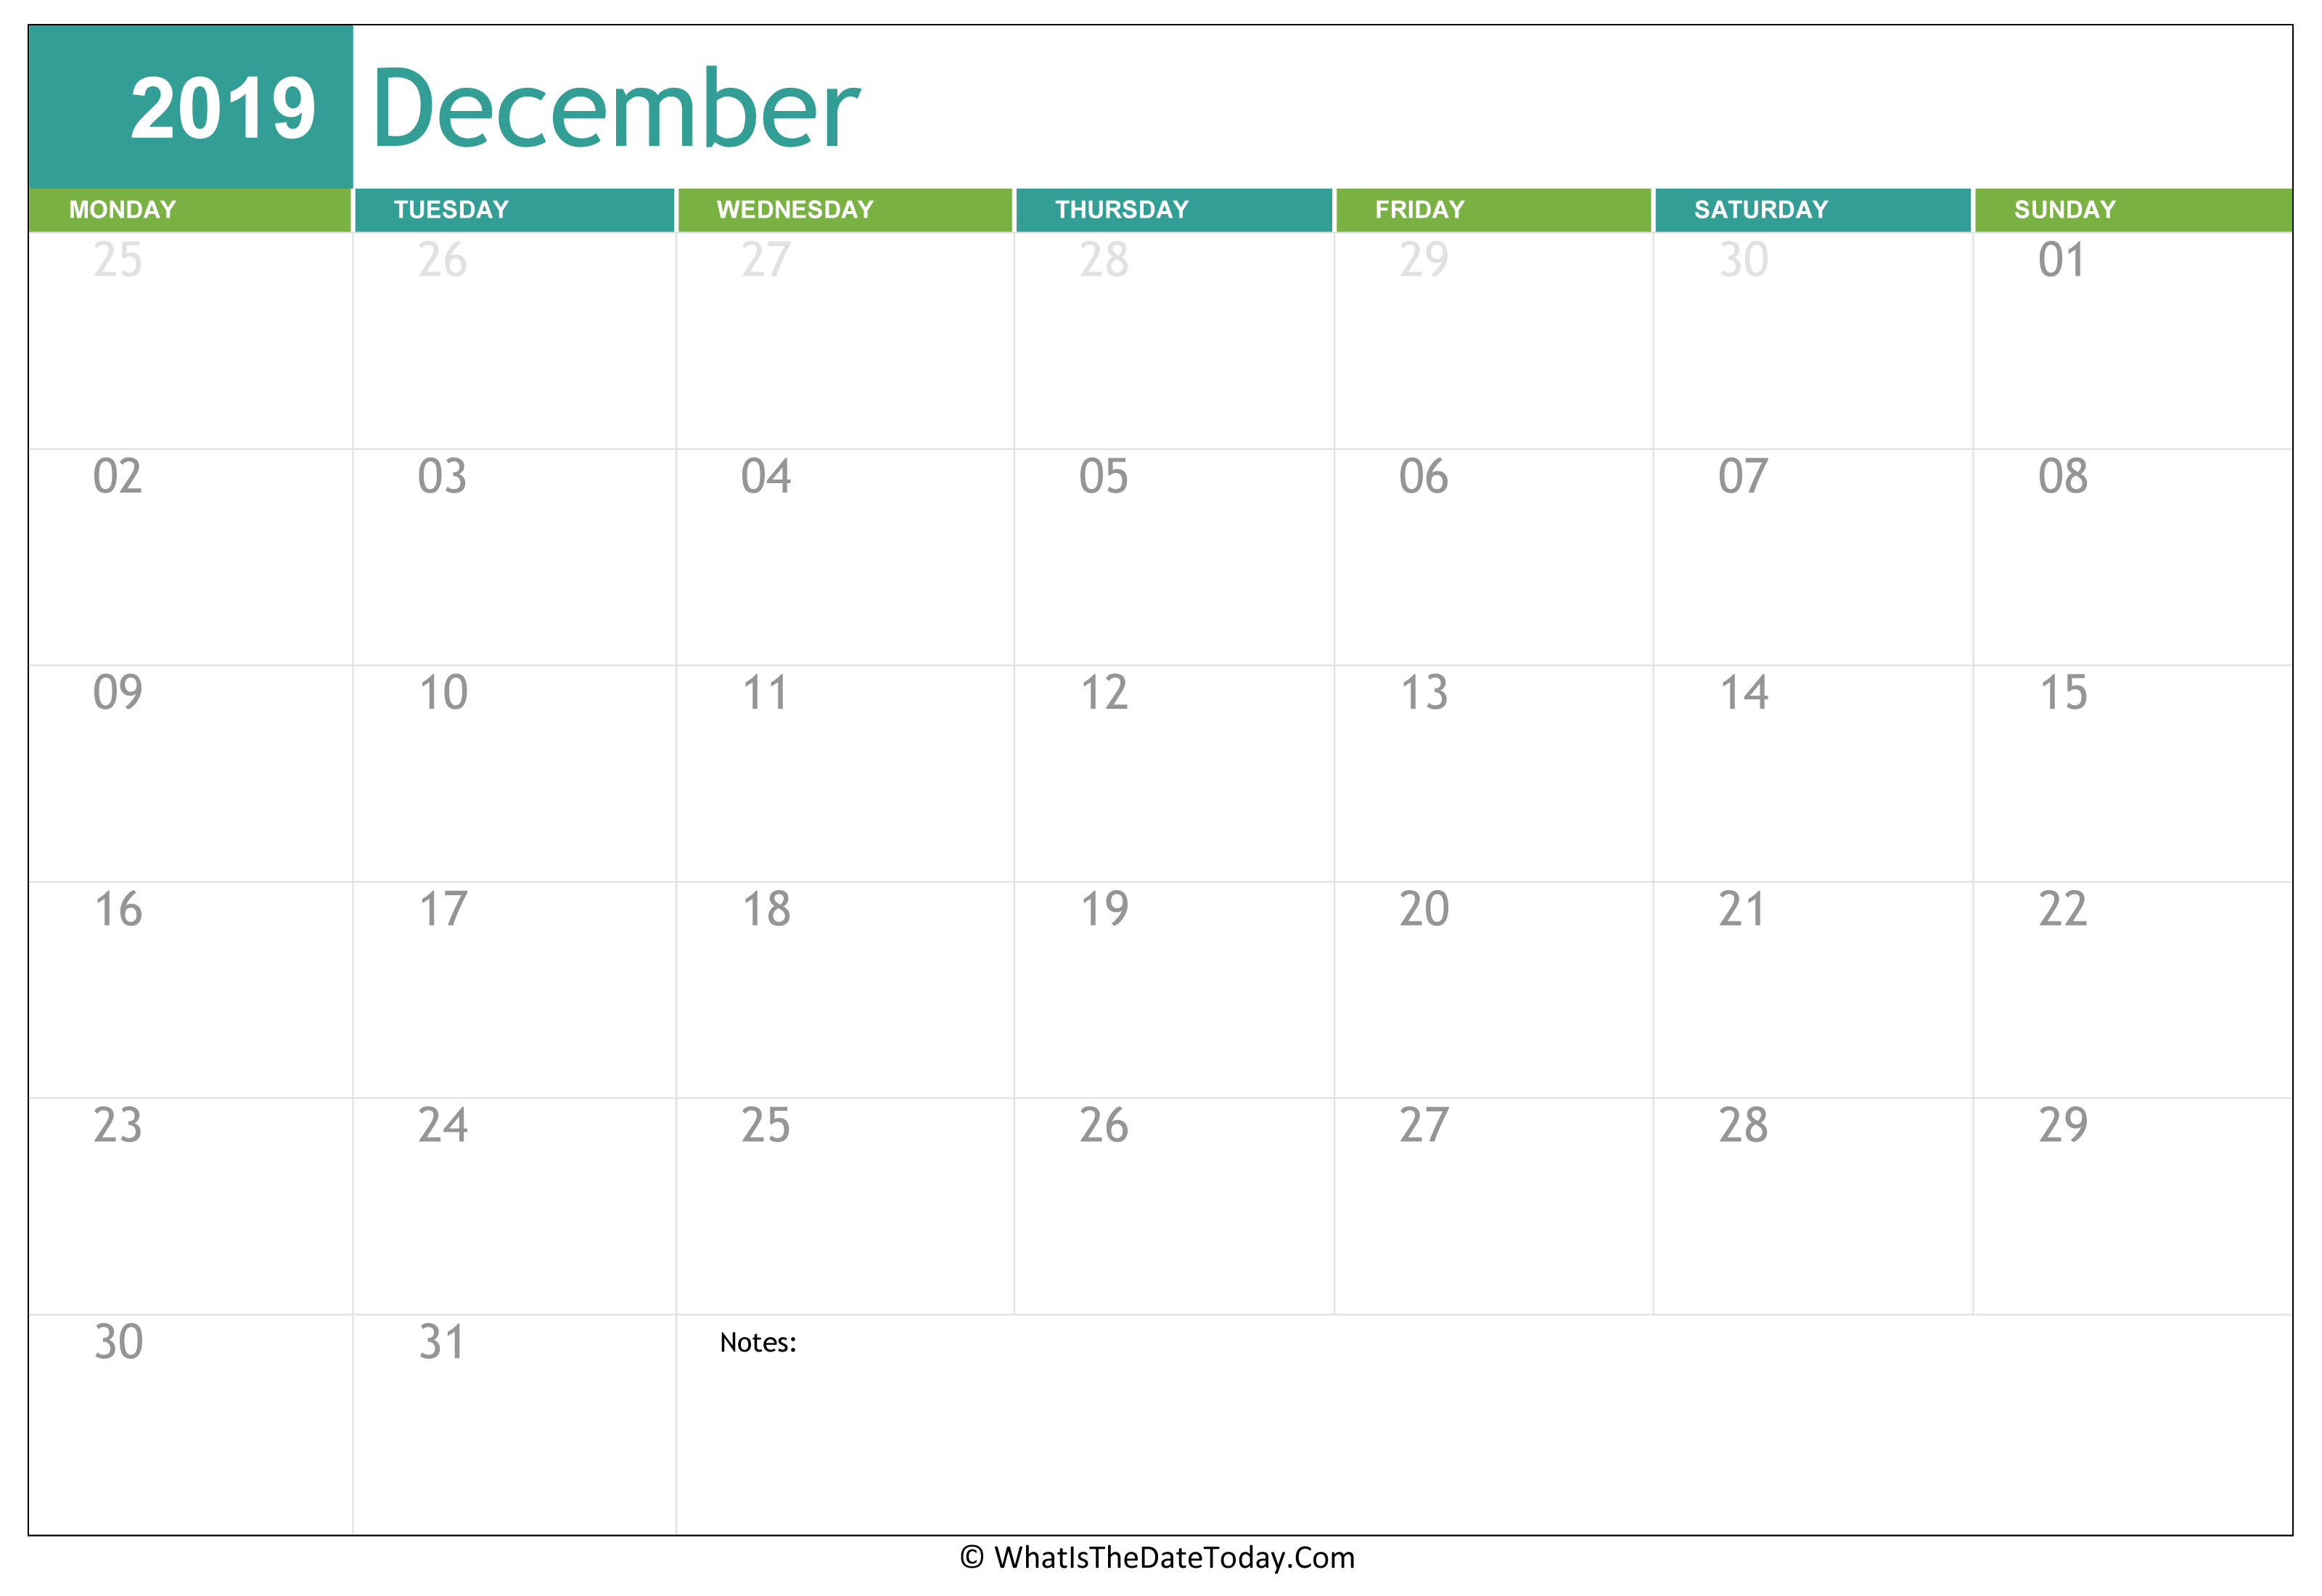 Fillable December Calendar 2019 | Whatisthedatetoday Intended For Print Calendar January 2022 Fillable Lines